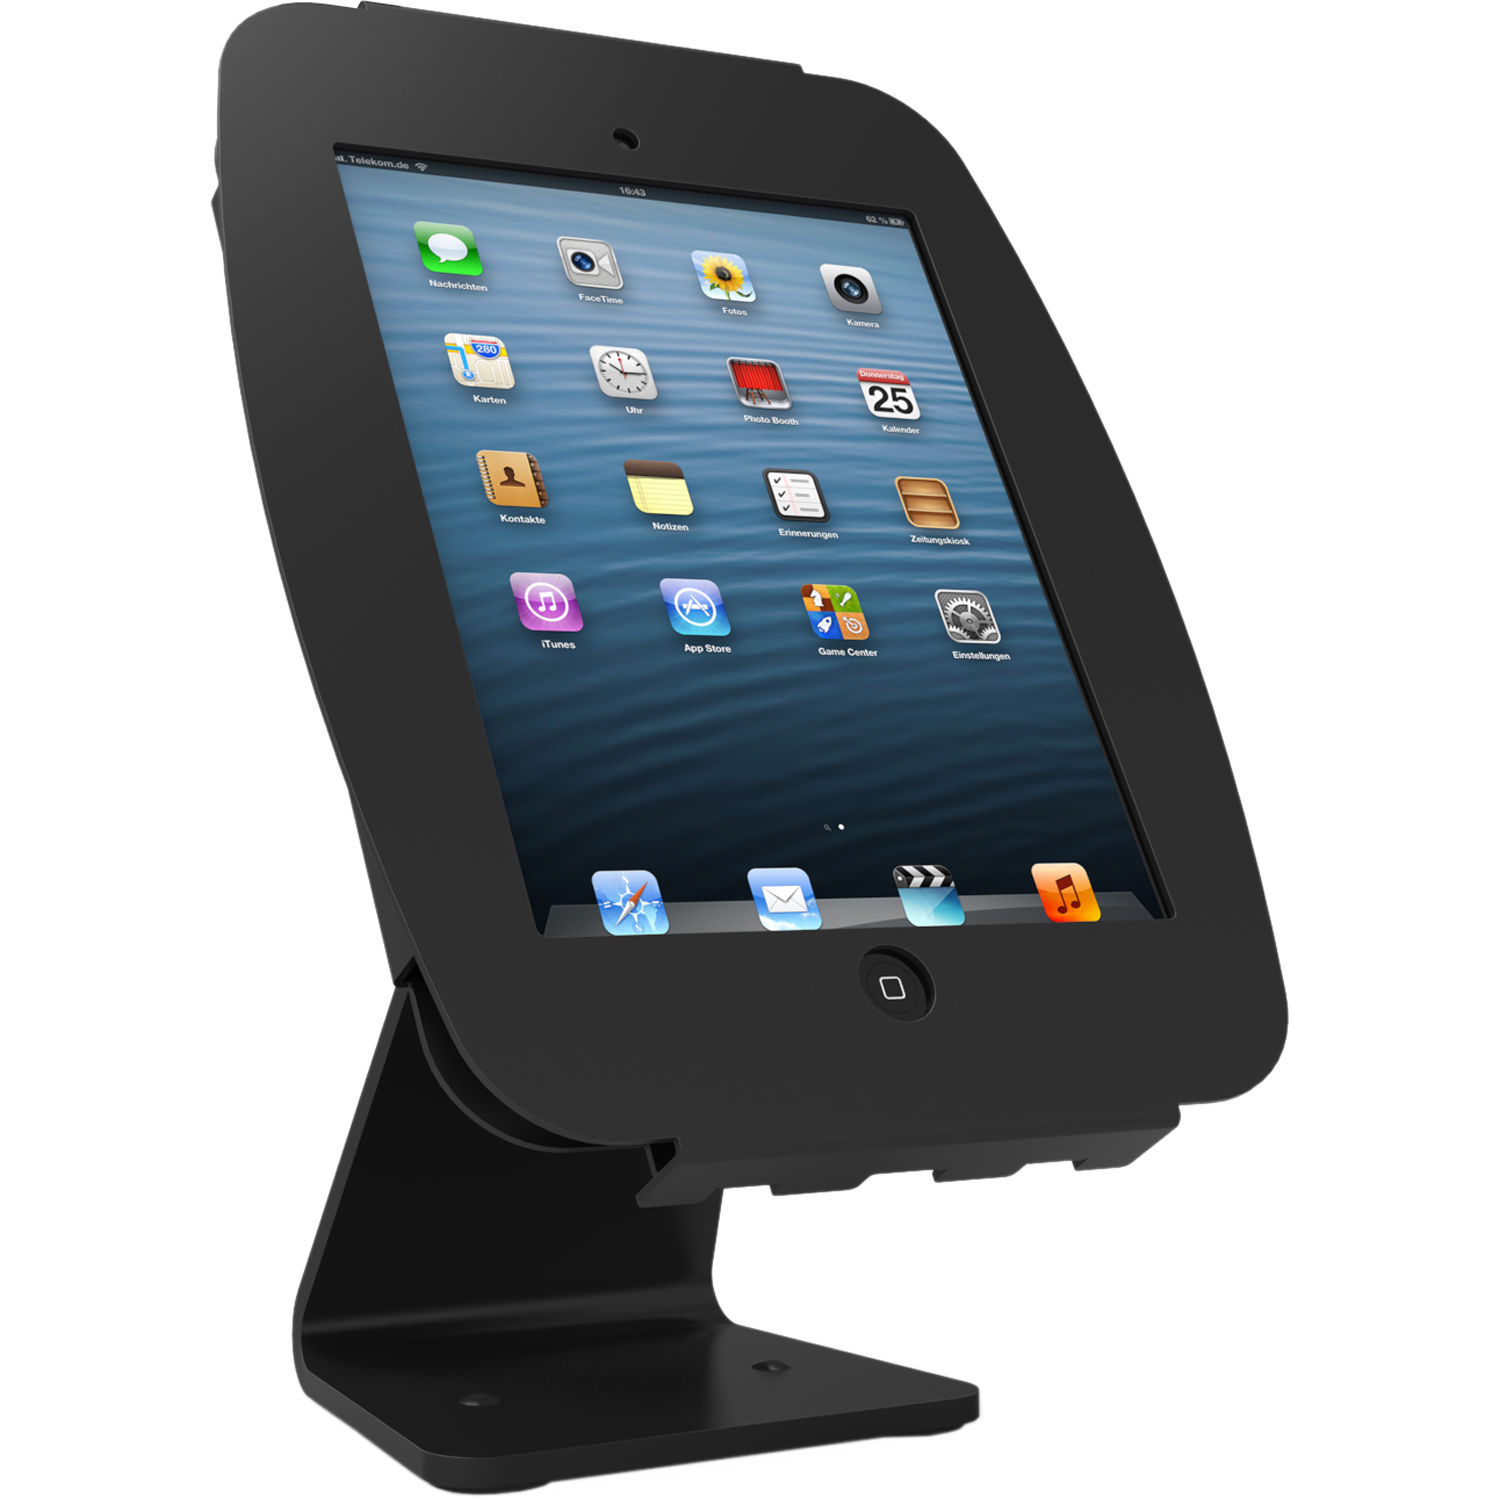 Maclocks Executive 360 All-in-One Enclosure Kiosk for 9 7